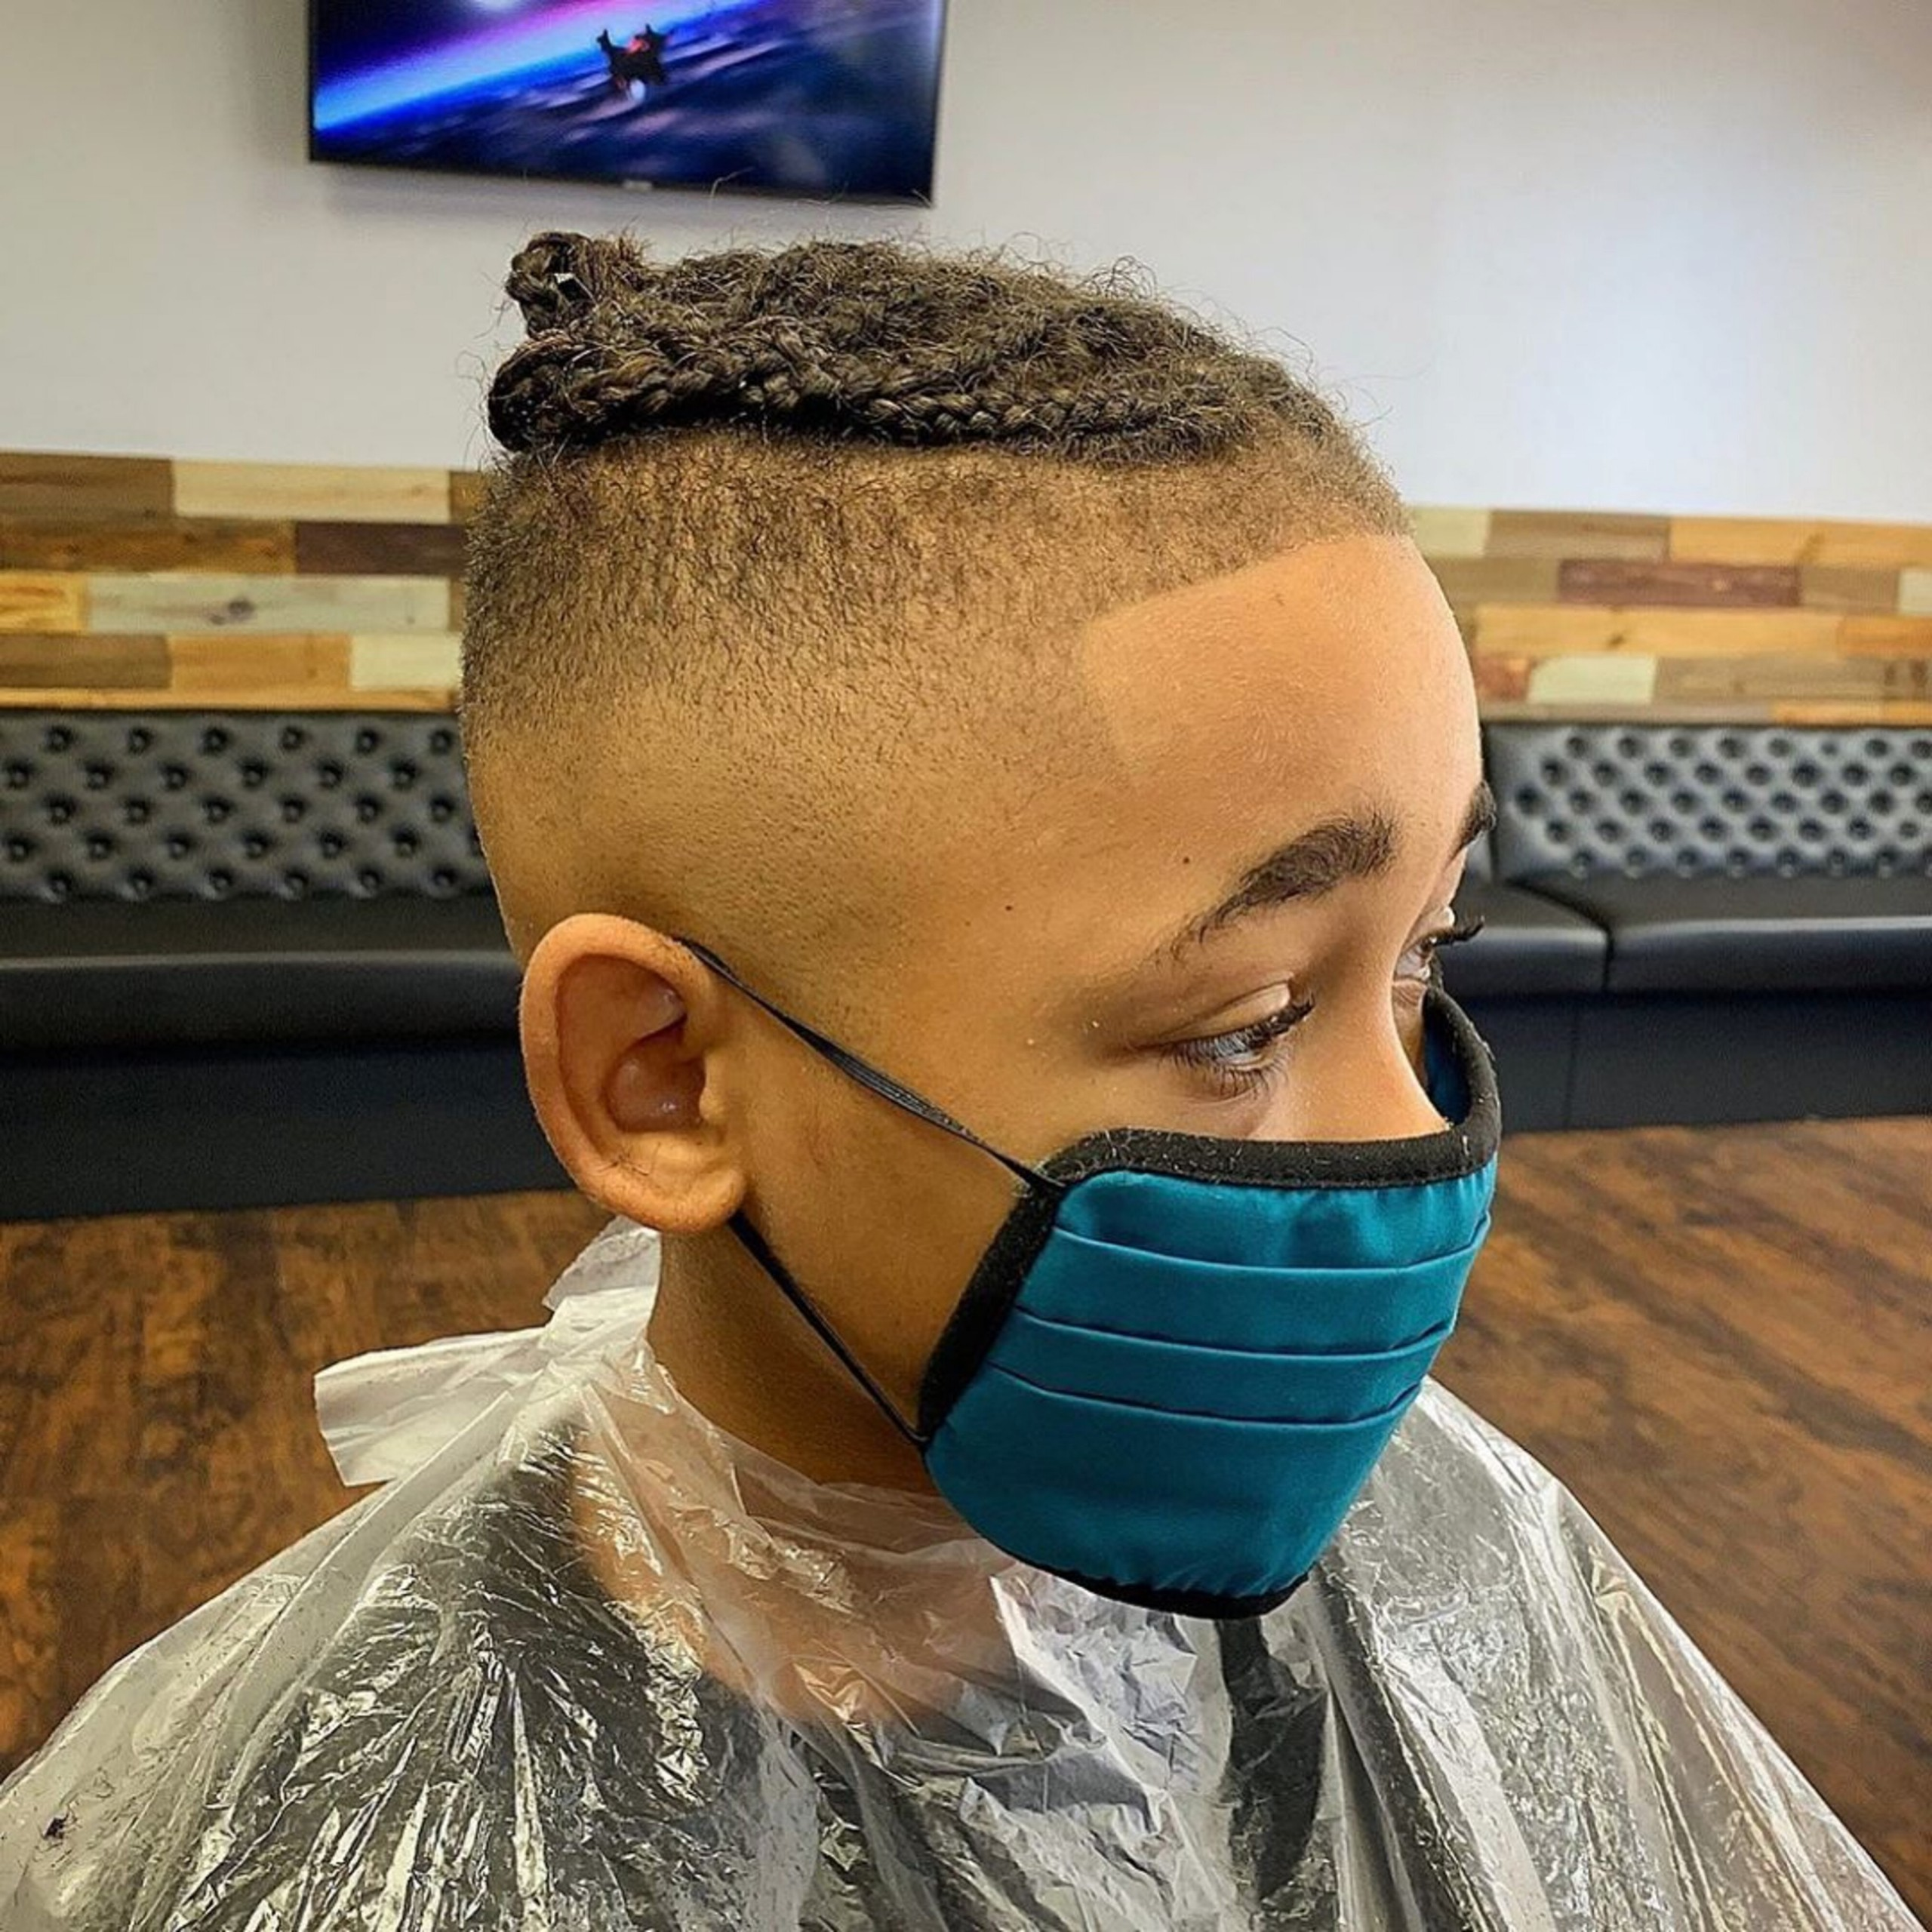 A faded haircut with braids for boys.